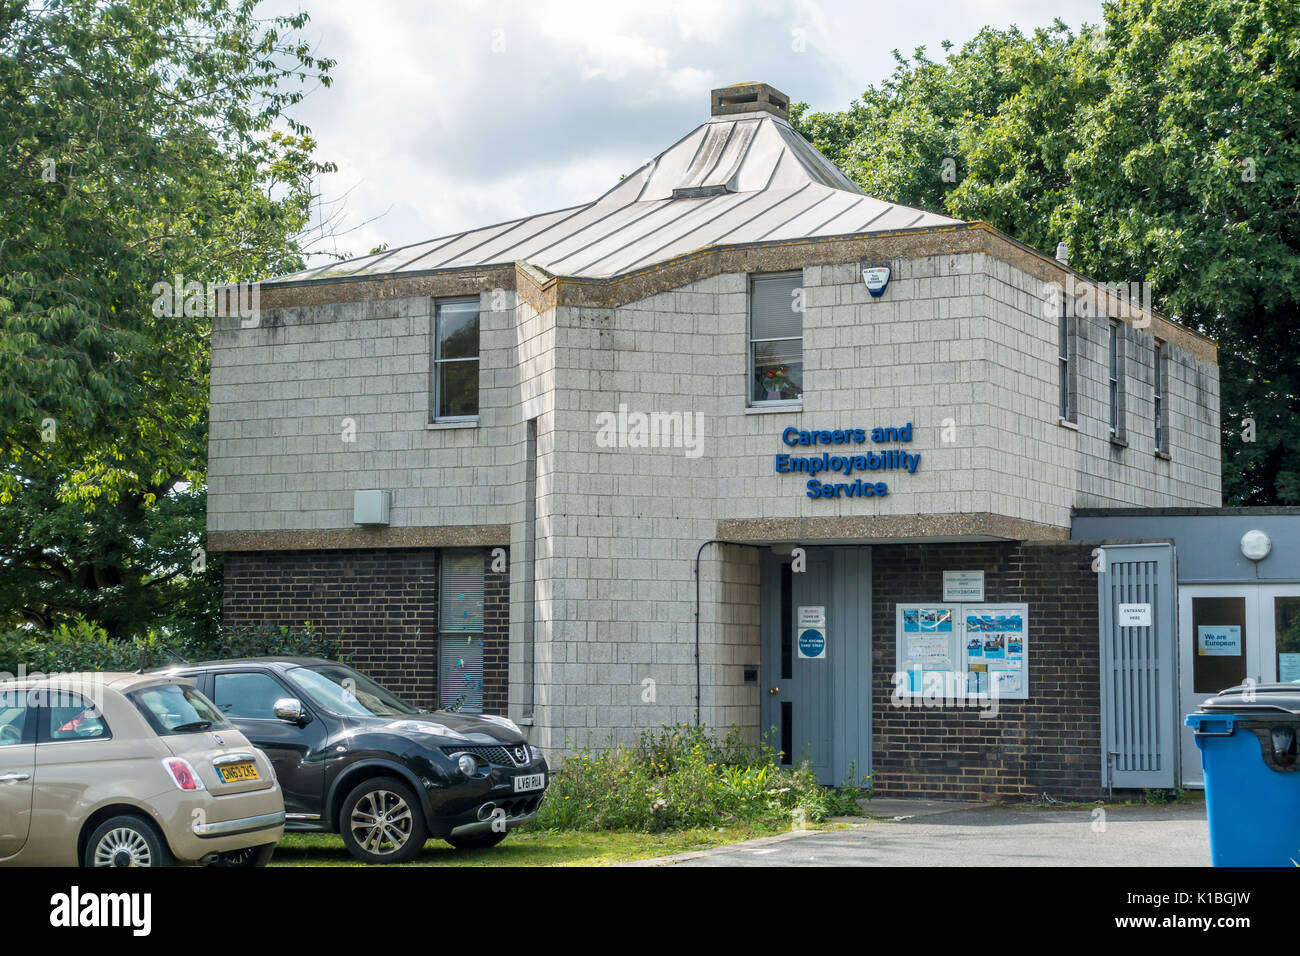 Careers and Employability Service Building,,University of Kent,UKC,Canterbury,Kent,England - Stock Image